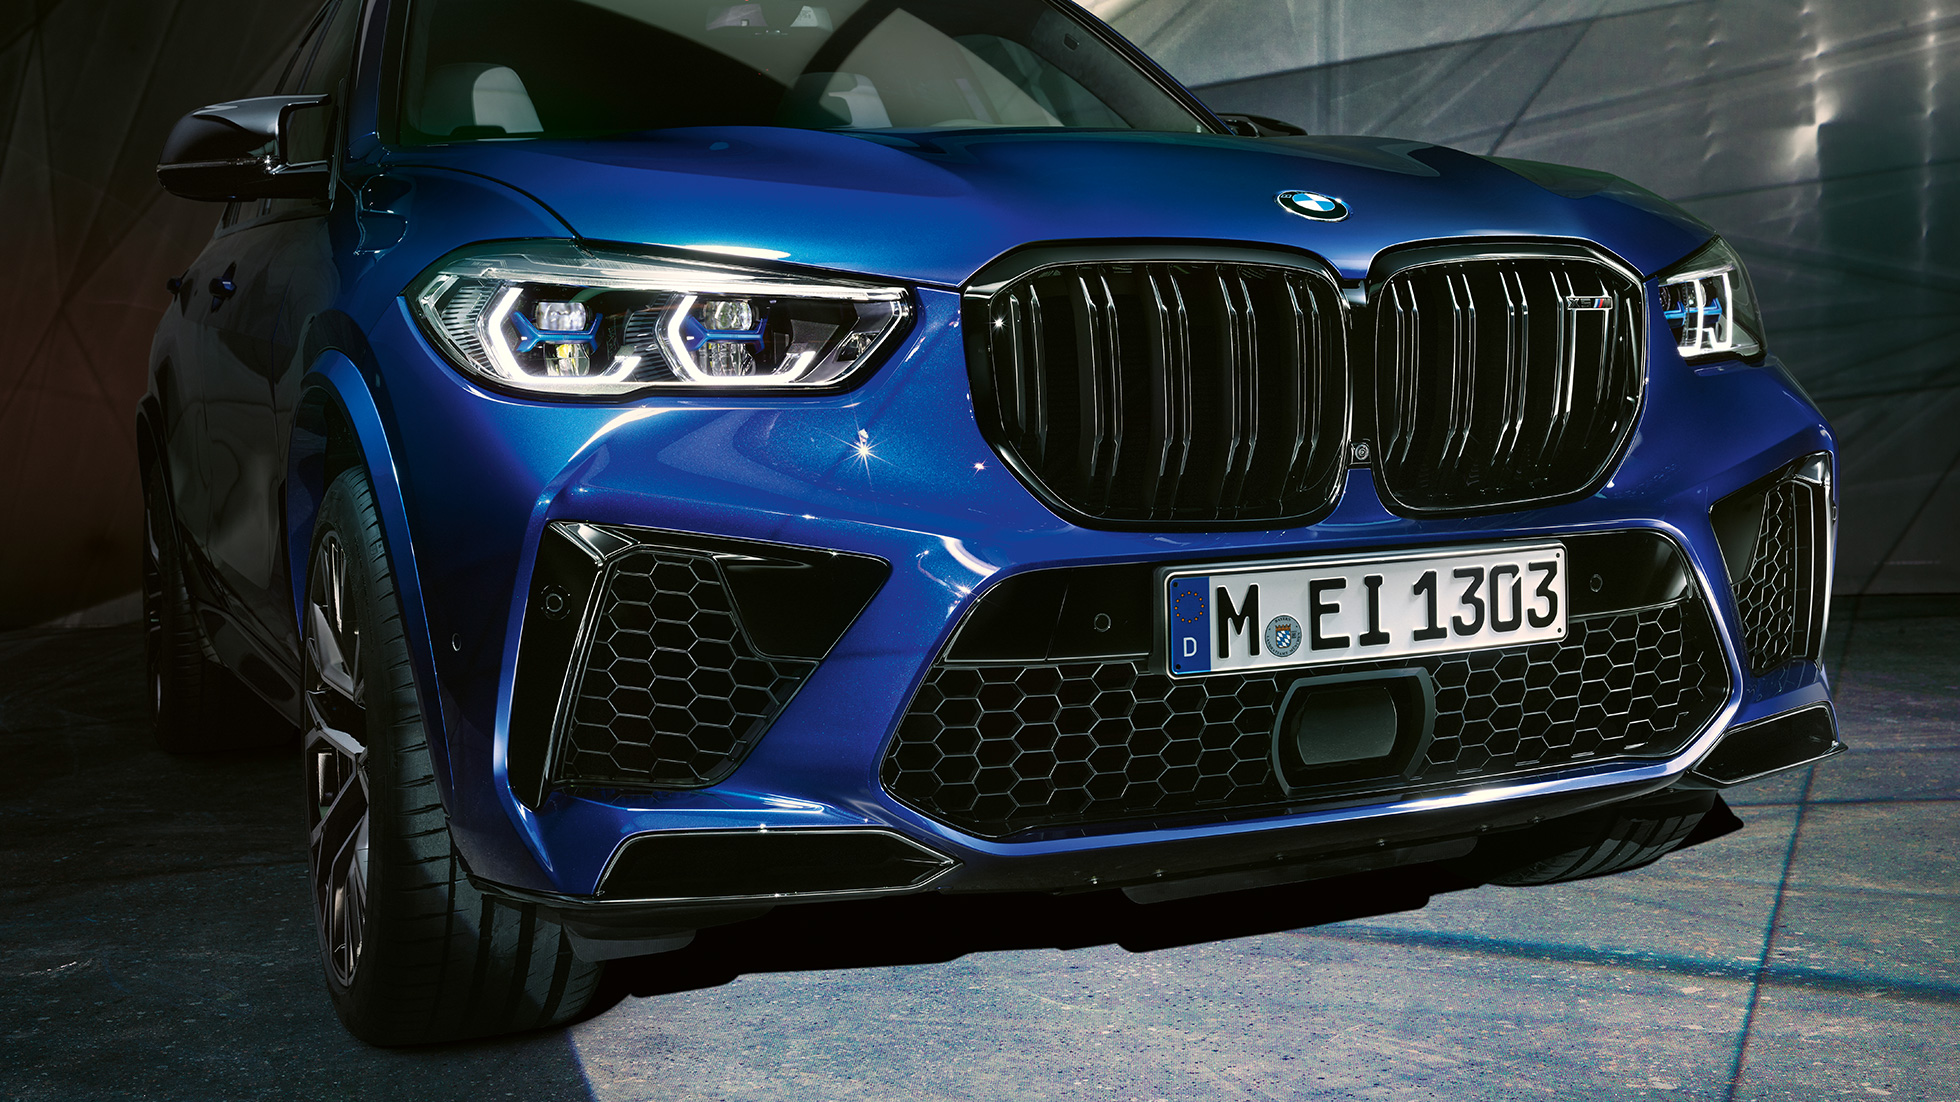 Parrilla doble M BMW X5 M Competition F95 Marina Bay Blau metalizado, detalle del frontal